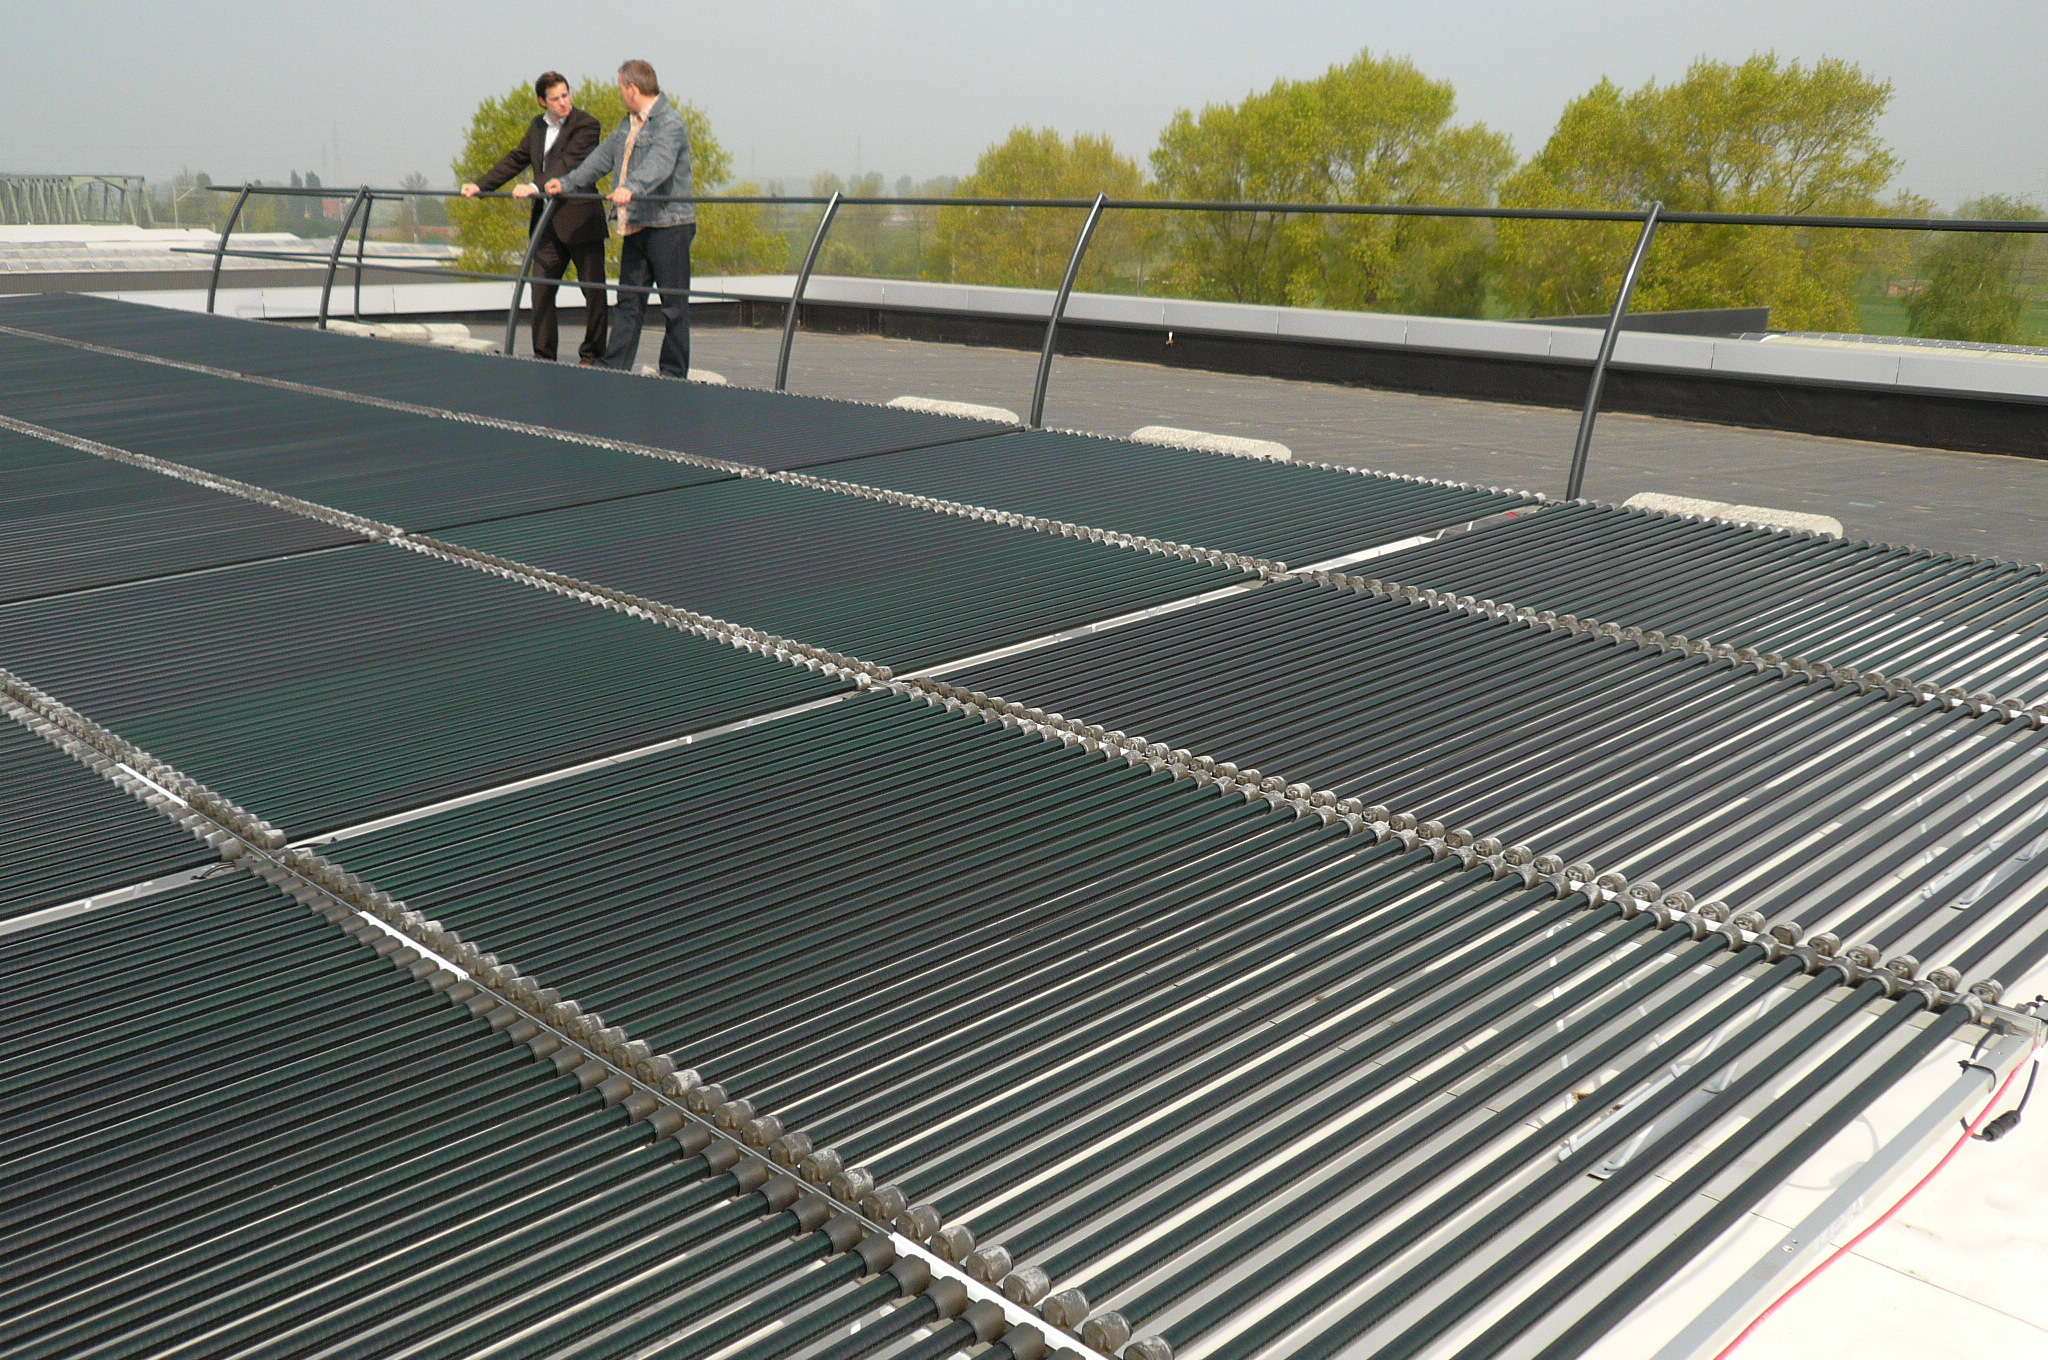 12 KWp photovoltaic system with Solyndra Panels